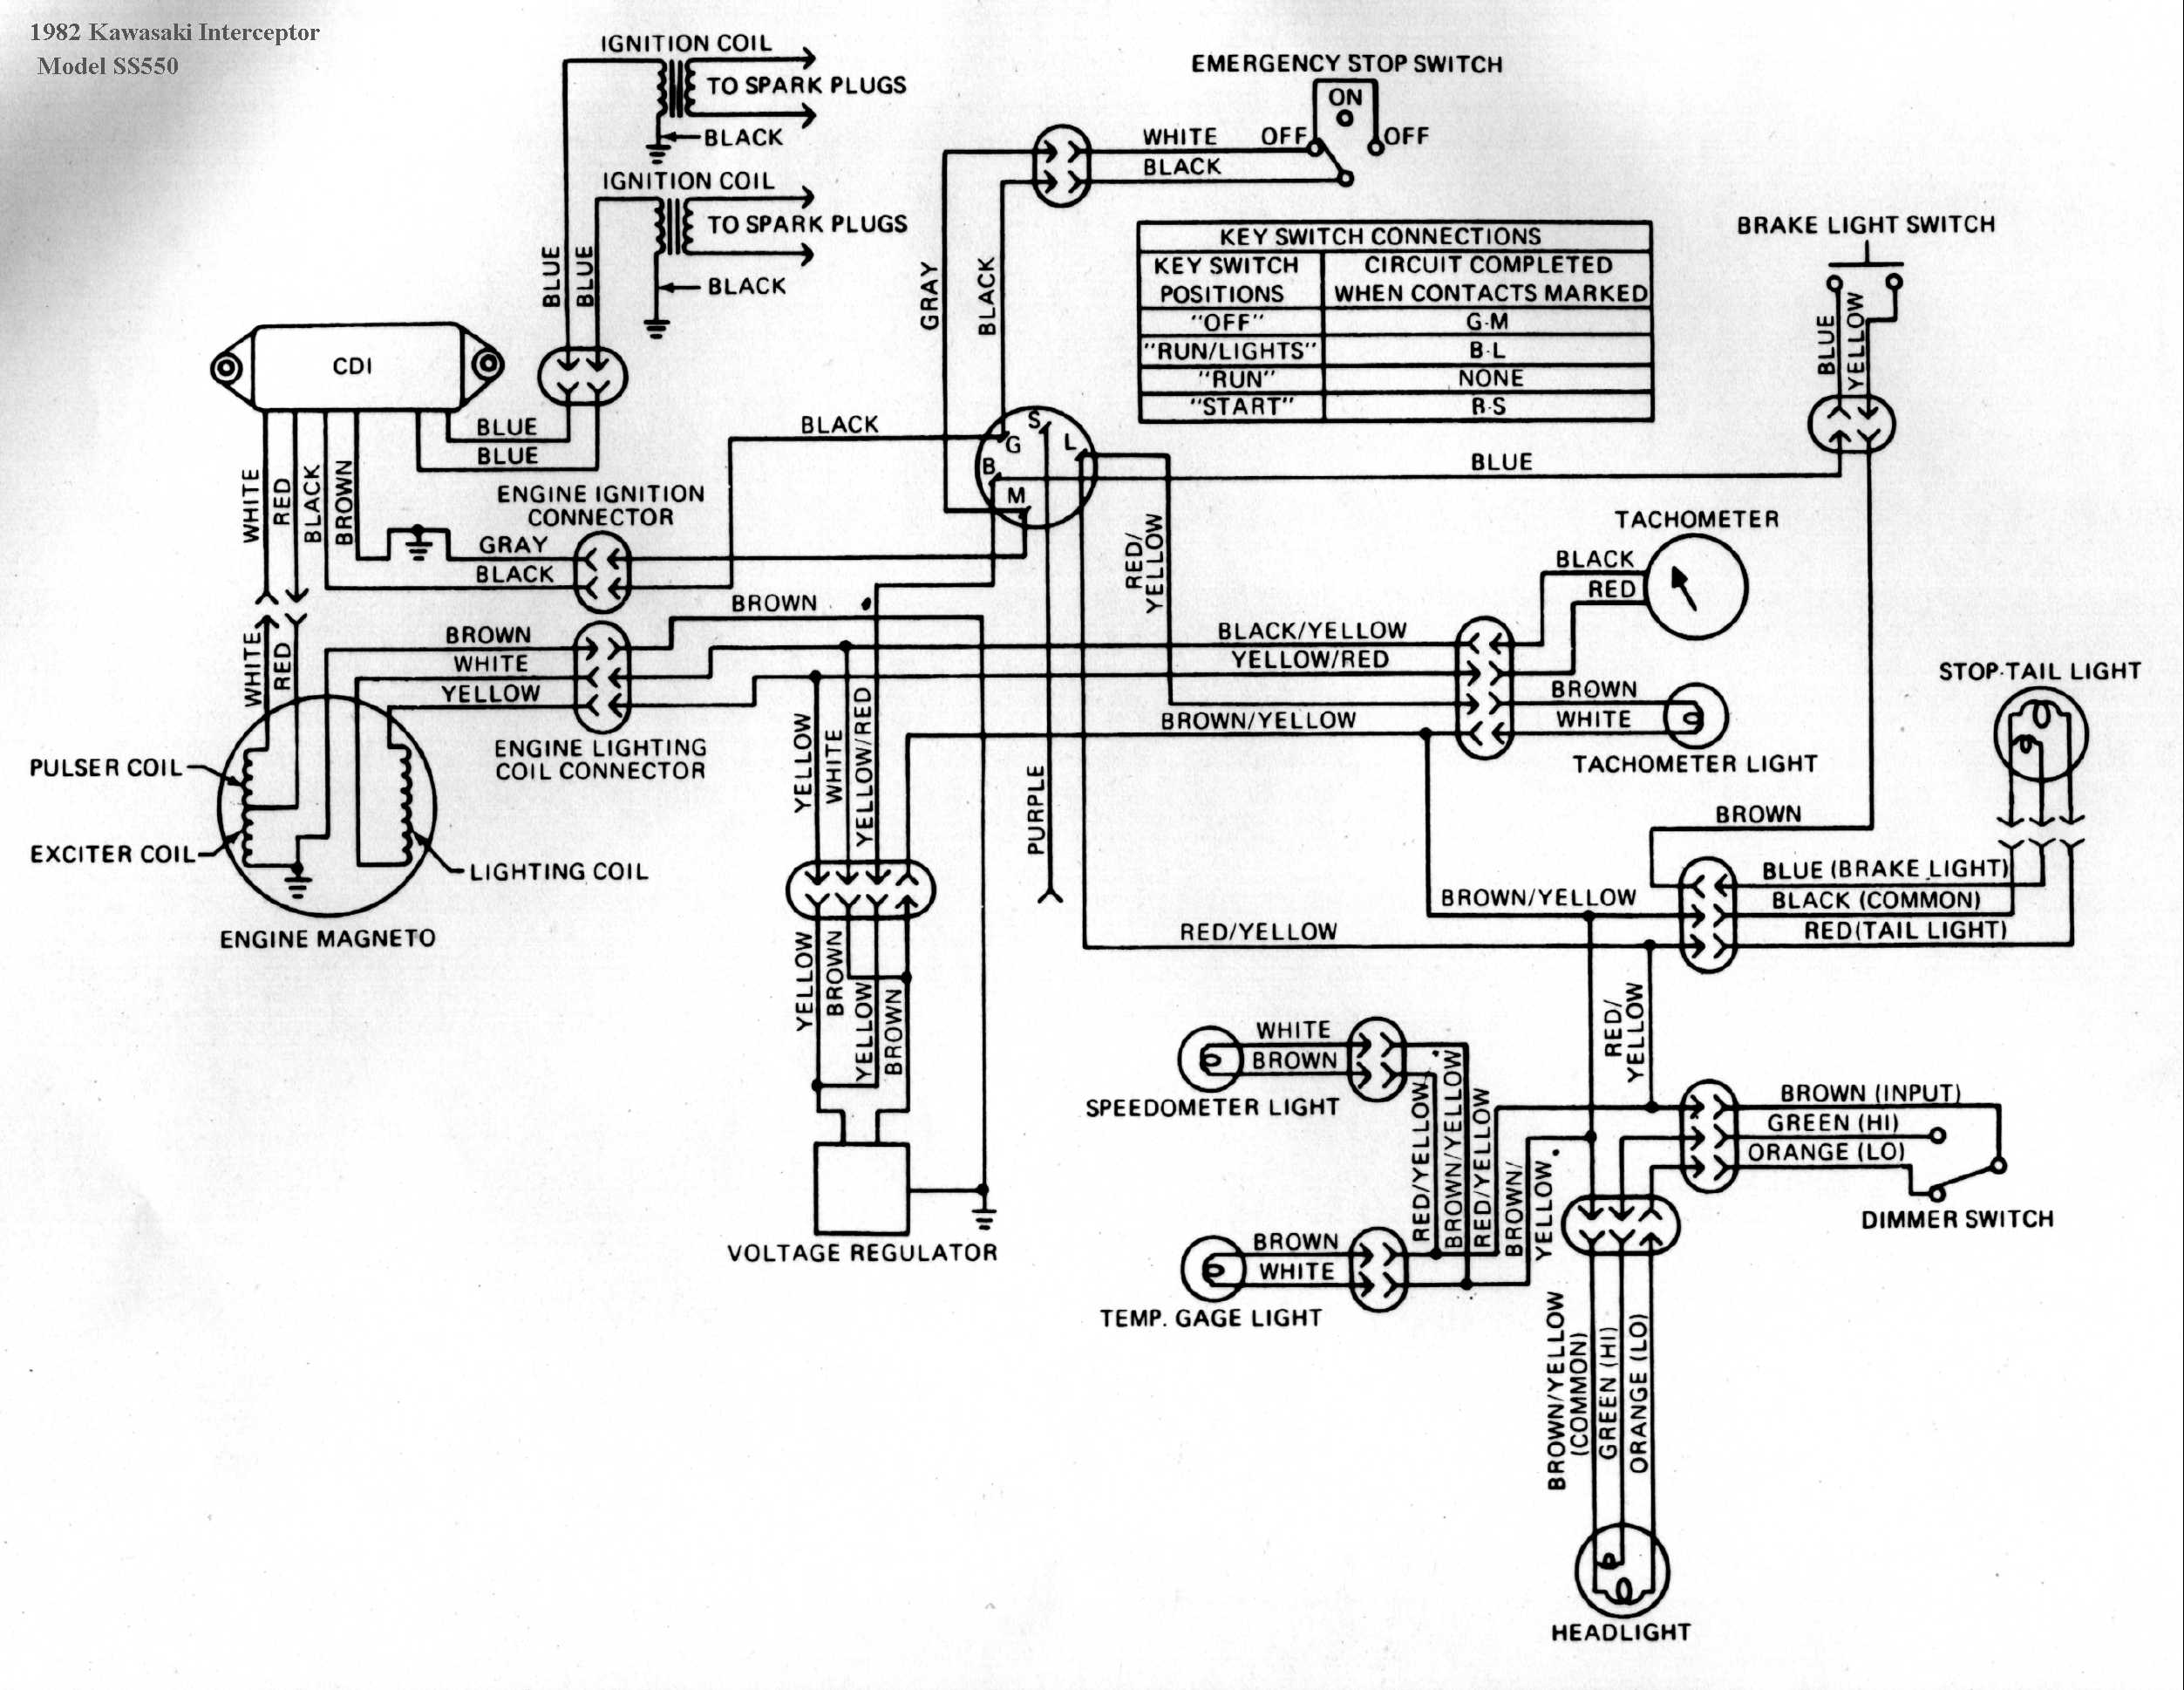 Klr 250 Wiring Diagram Free Download Schematic Library. 1981 Ltd Manual Start 1982 Interceptor. Wiring. 1994 Klr 650 Wiring Schematic At Scoala.co